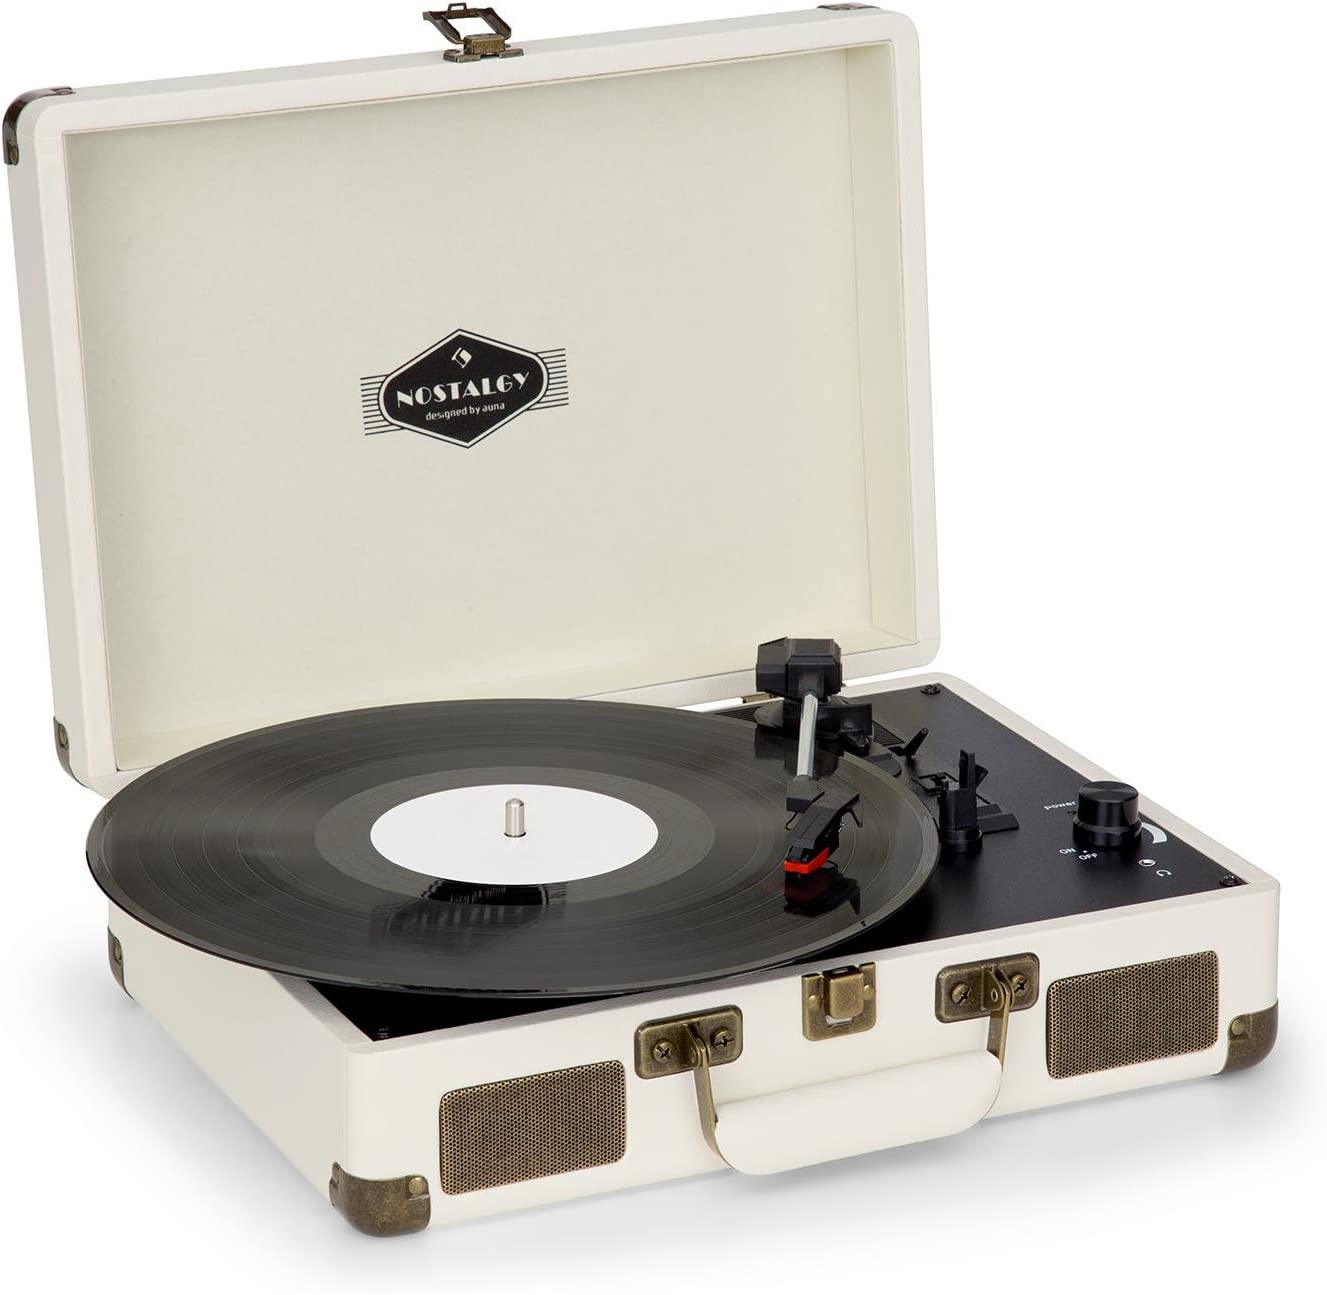 auna Peggy Sue Retro Record Player, Turntable with Built-in Stereo Speakers, Belt-Drive, USB-Port (B), Vinyl LP, Plays 33, 45 and 78 RPM Records, Digitization, Plug & Play, Portable Suitcase, Creme